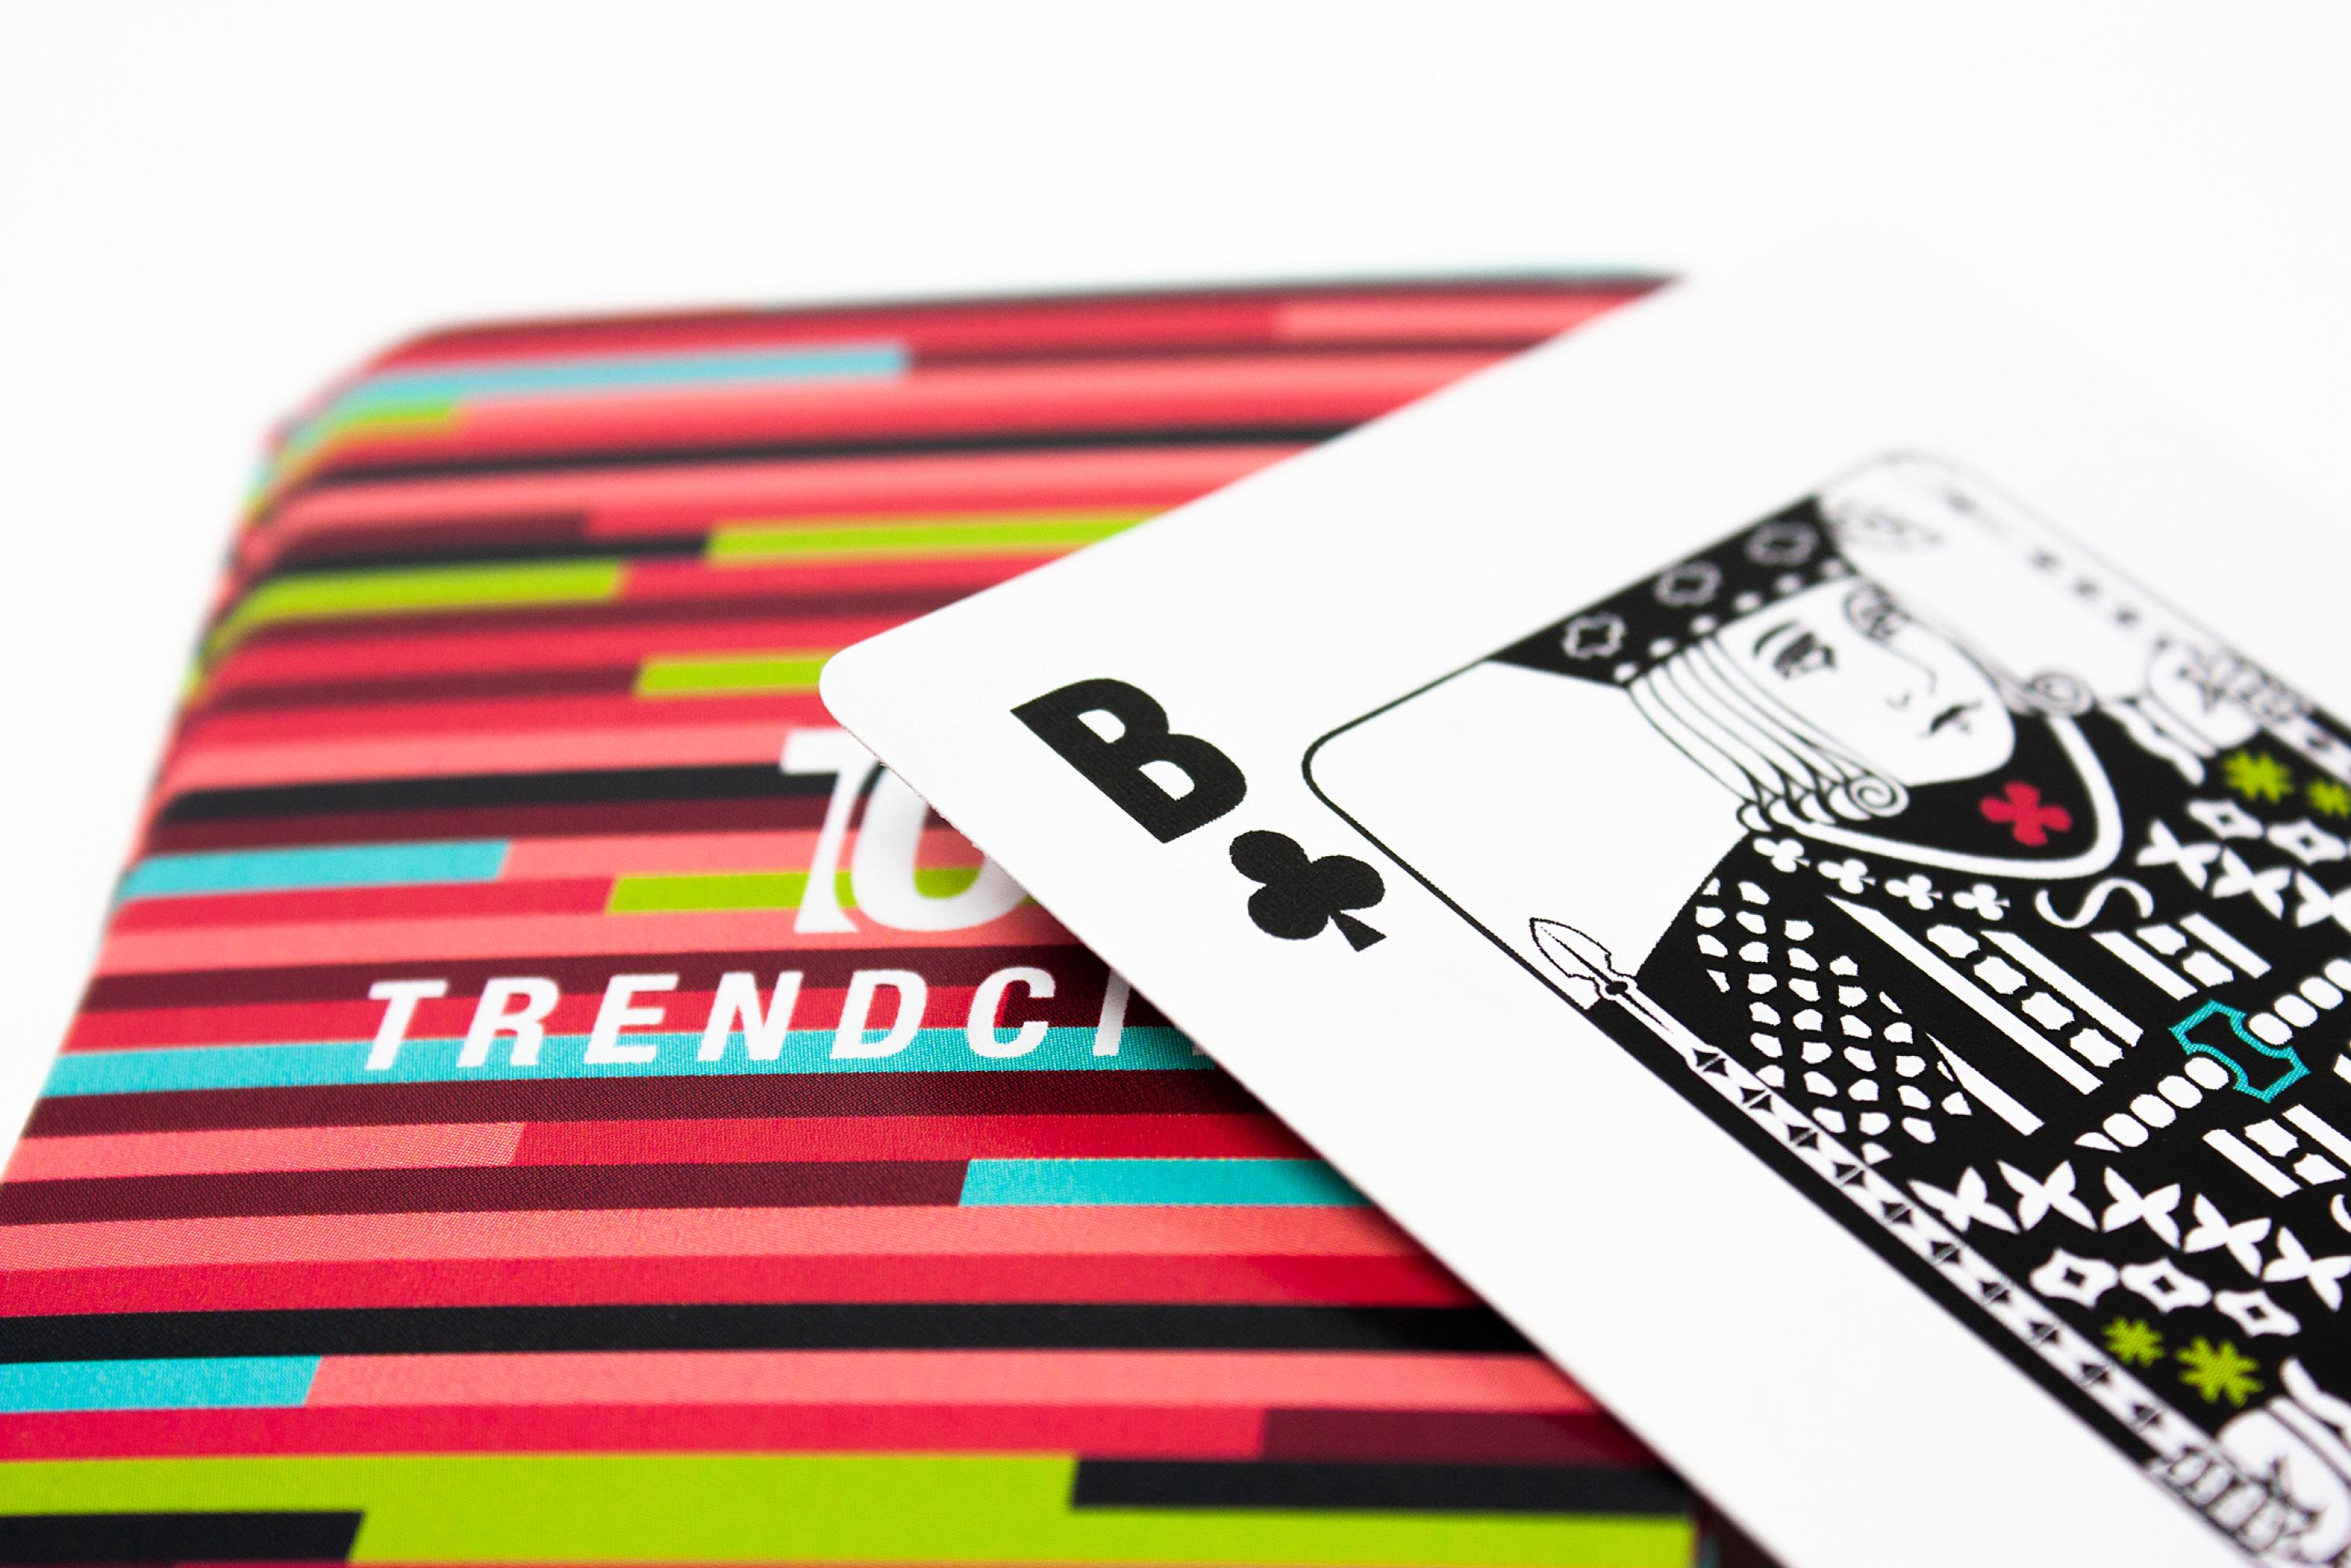 Pokerkarten-trendcity-formlos-corporate-design-print-2